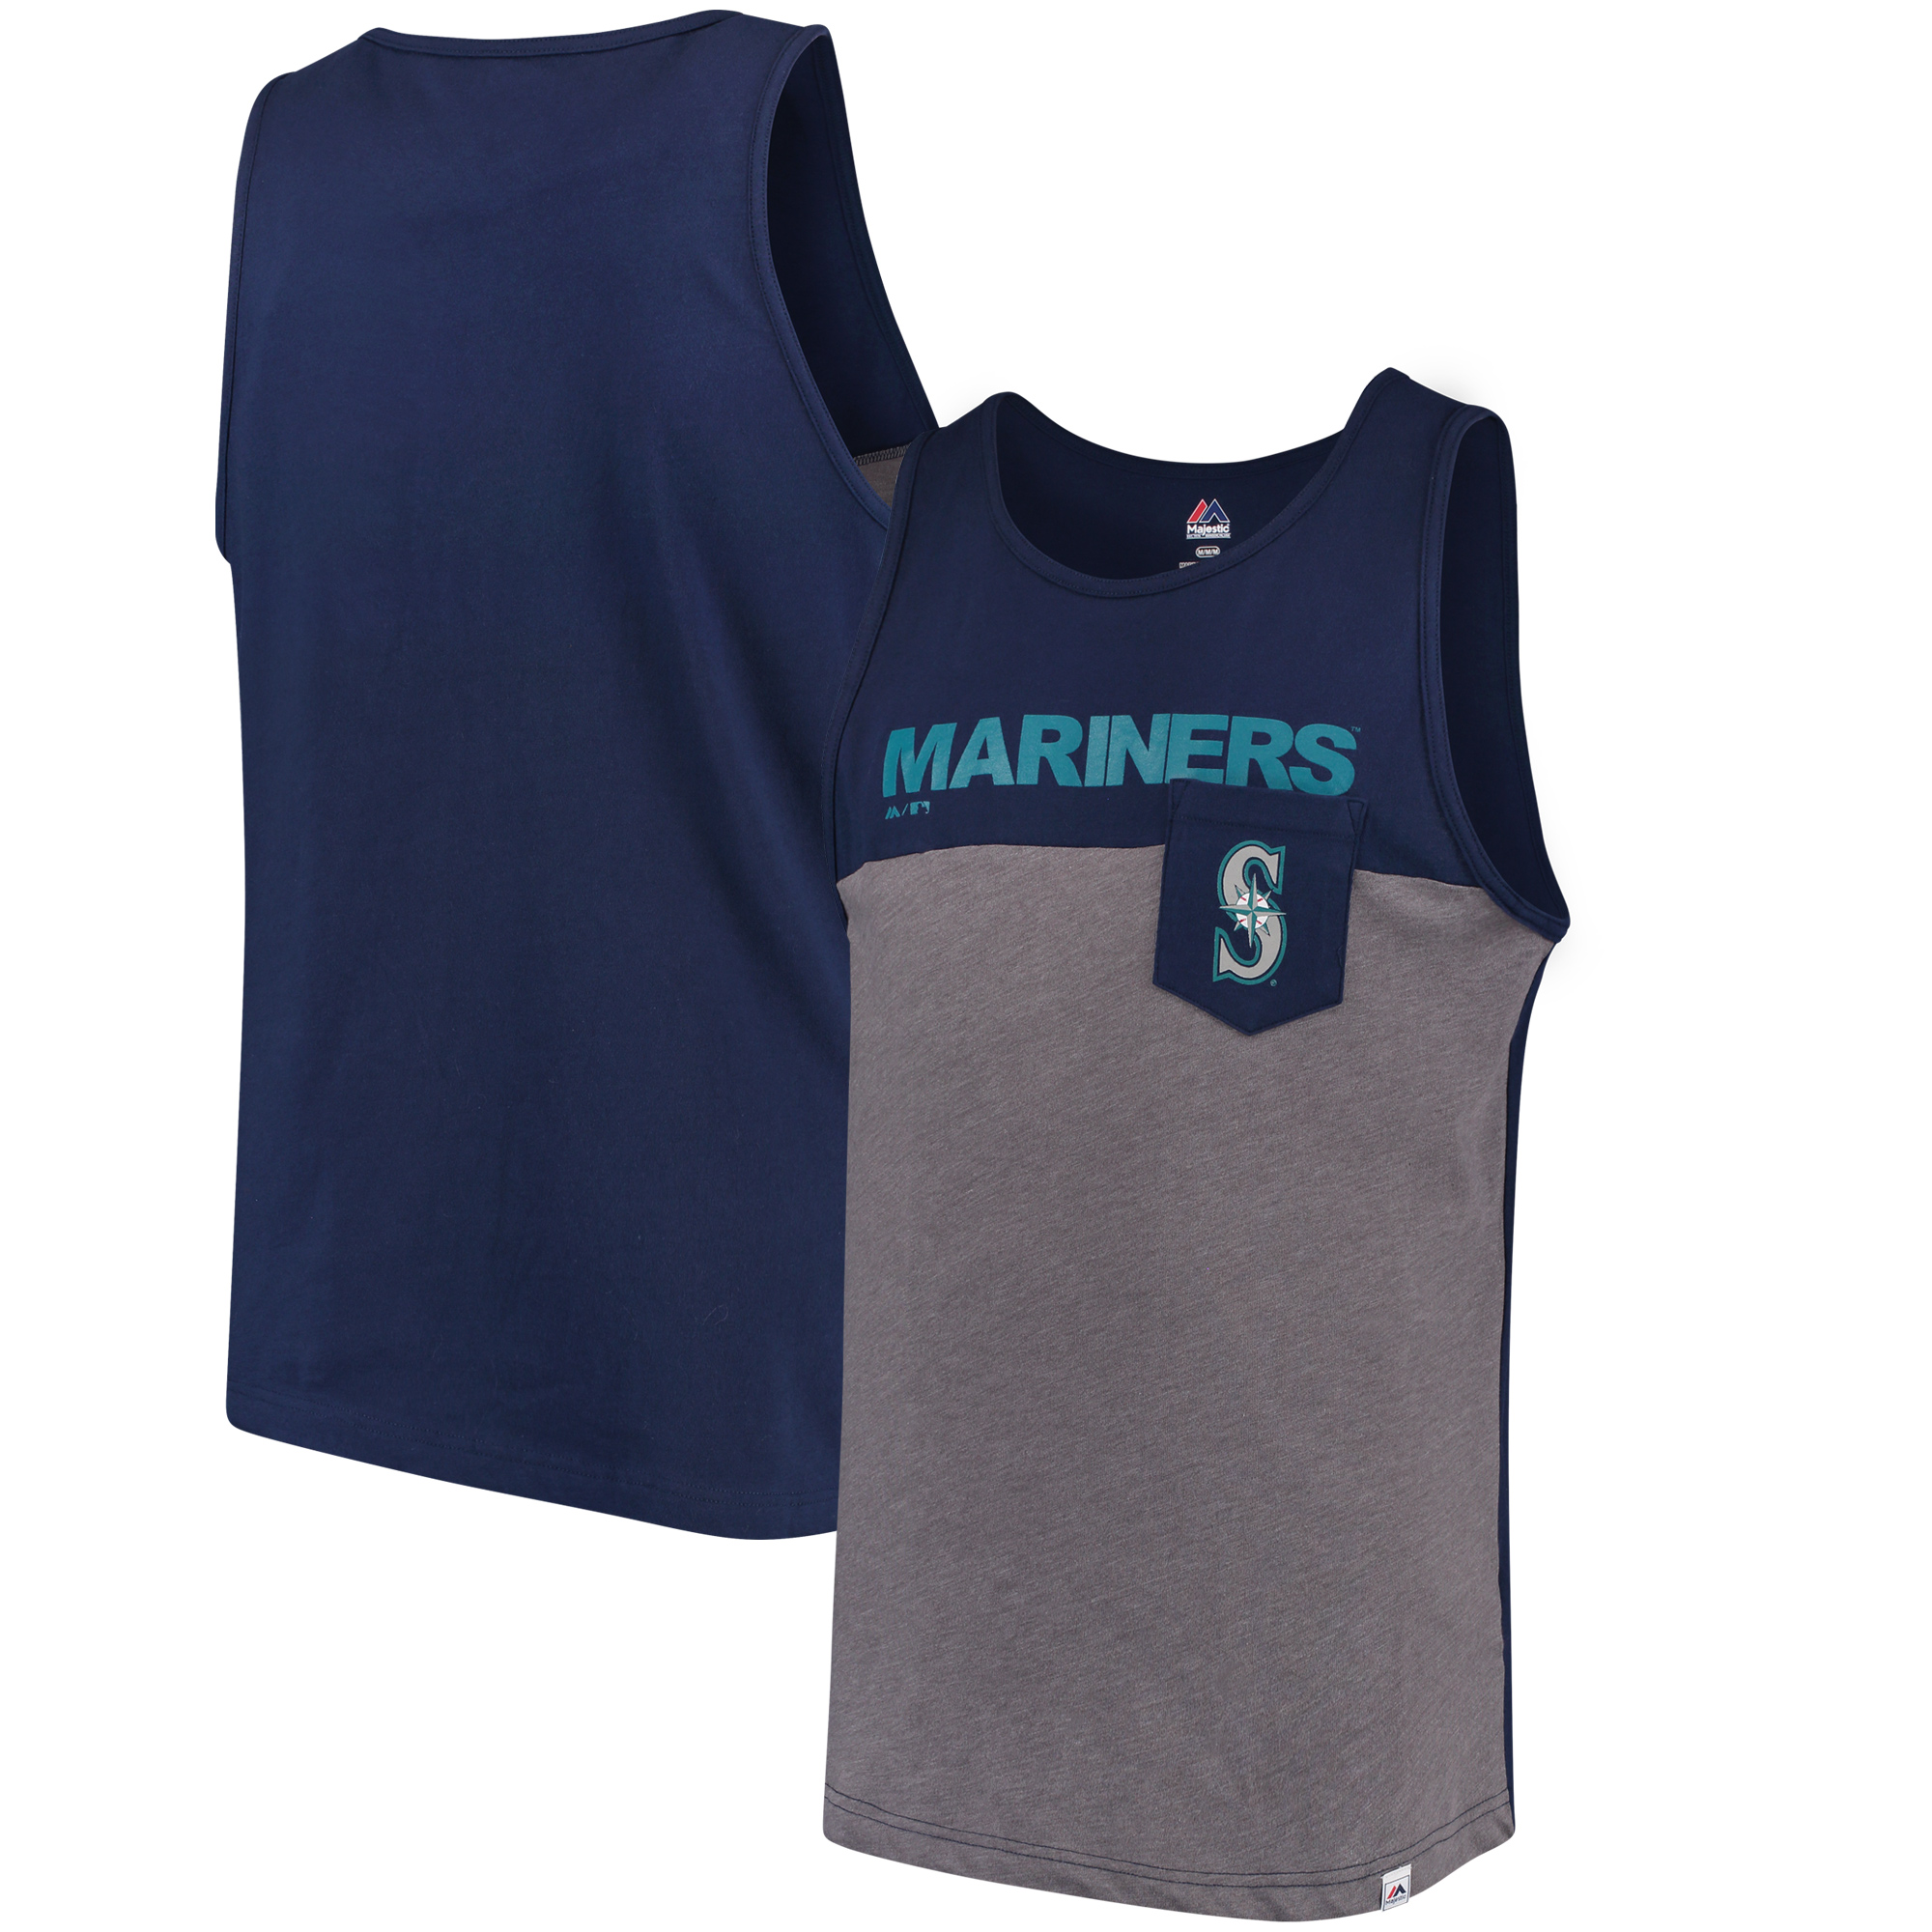 Seattle Mariners Majestic Throw the Towel Pocket Tank Top - Navy/Gray